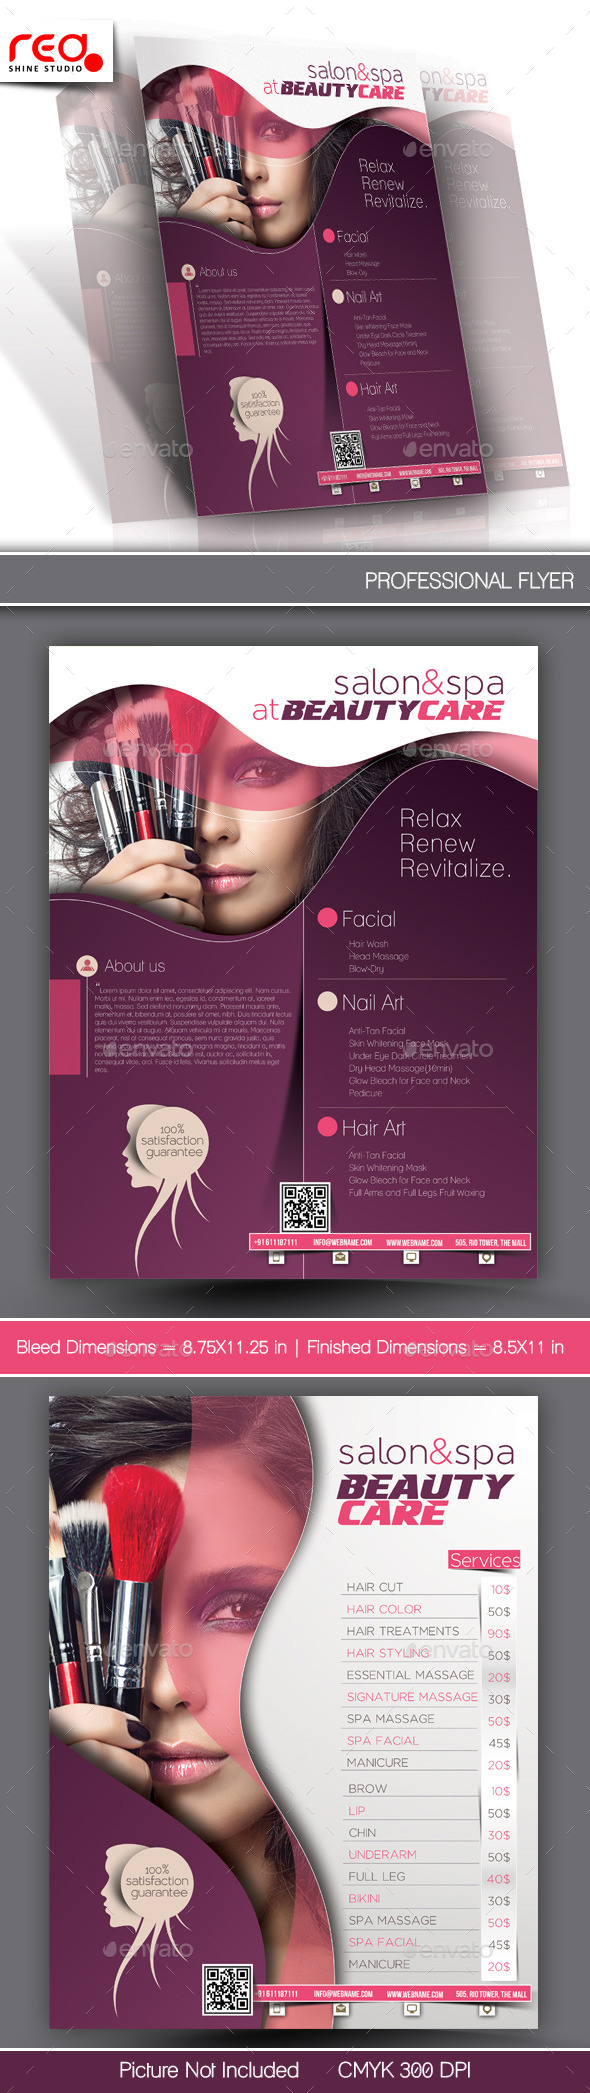 Beauty Care Flyer & Poster Template - Commerce Flyers